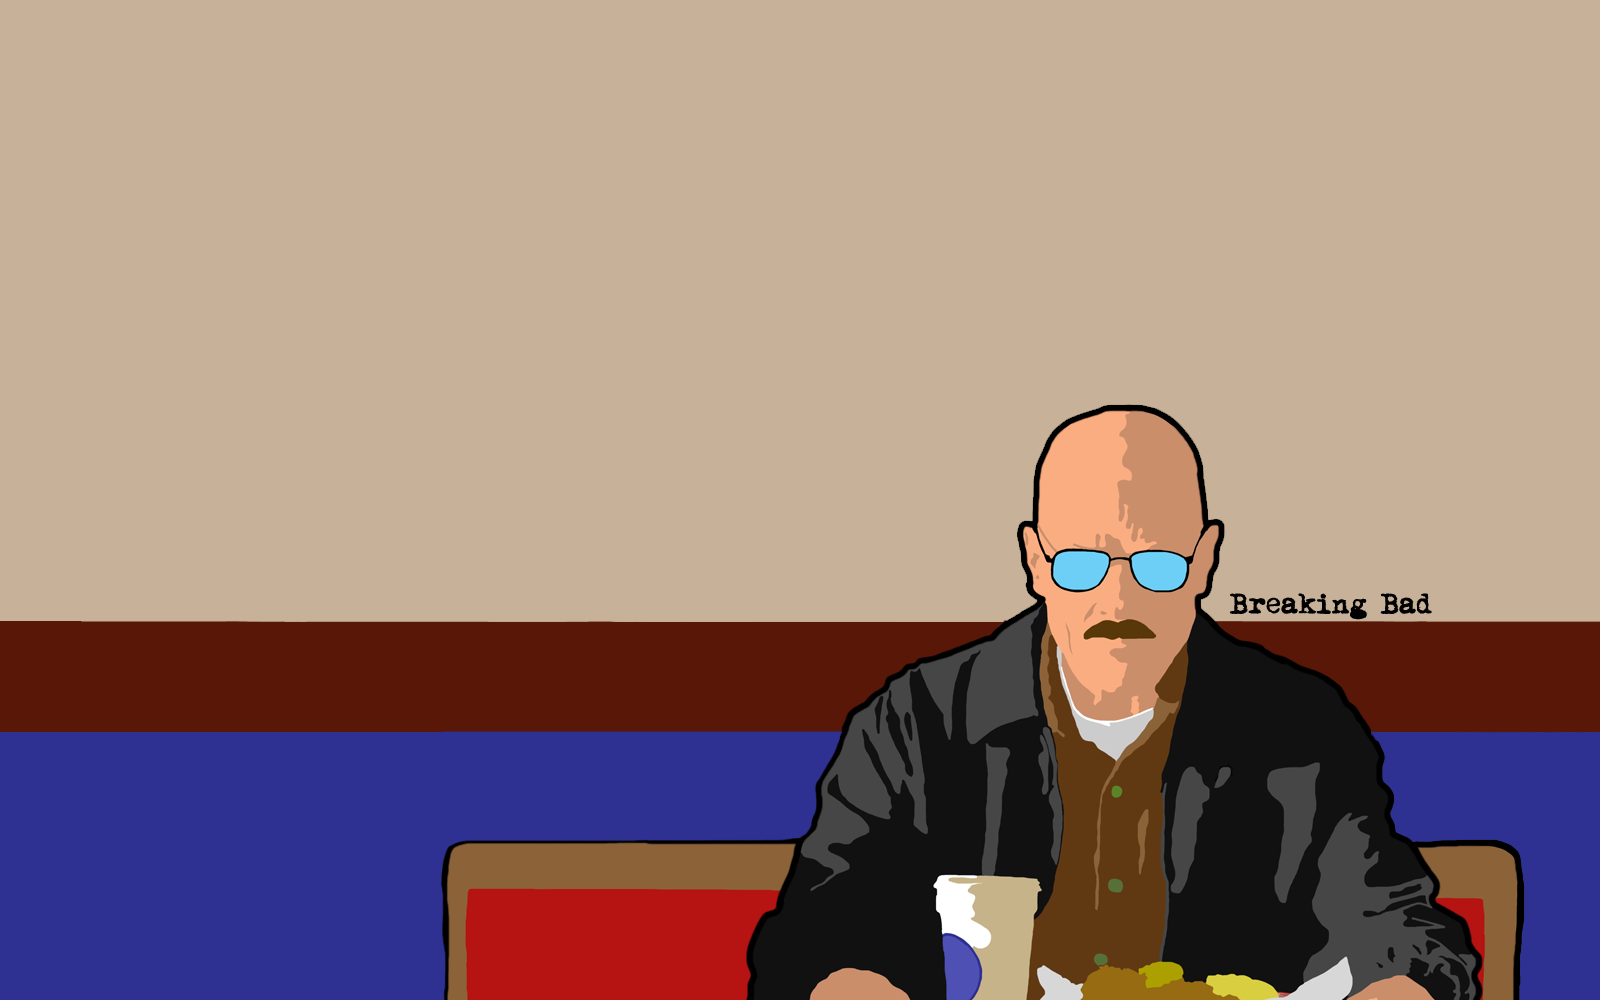 Si te gustó Breaking Bad tenés que guardar estos Wallpaper